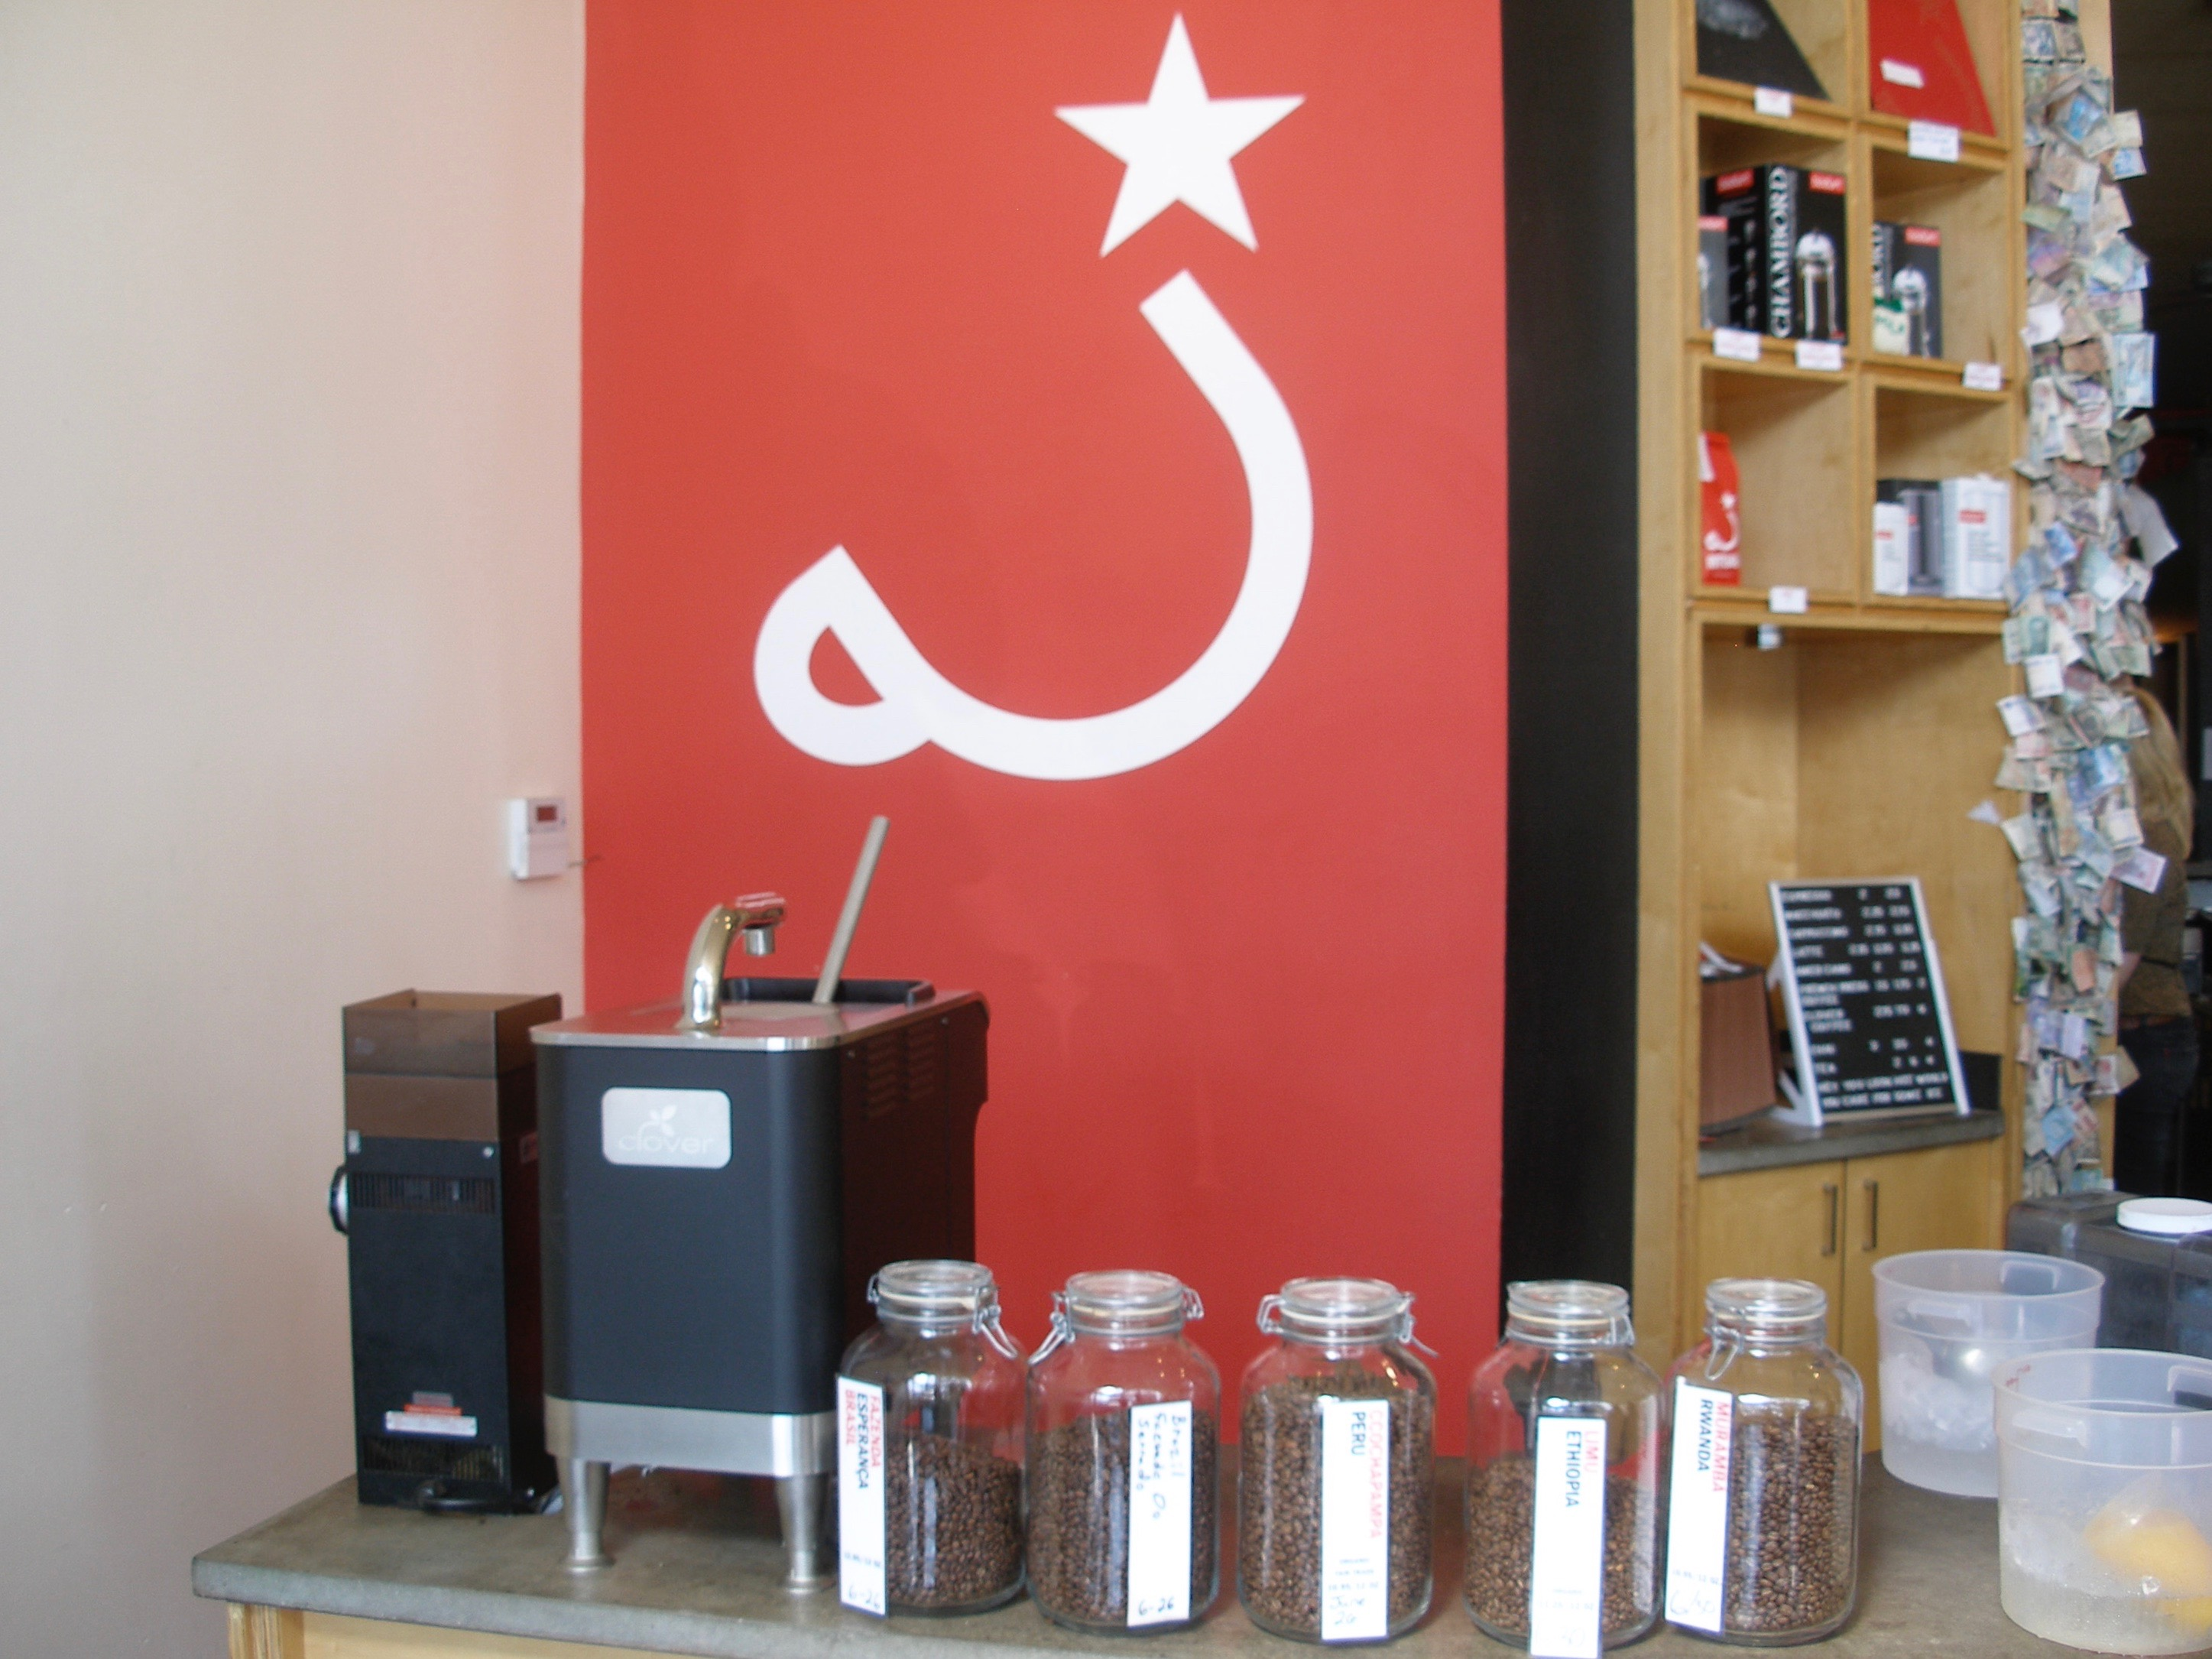 Ritual Coffee Roasters: Compelling Mission District Cafe